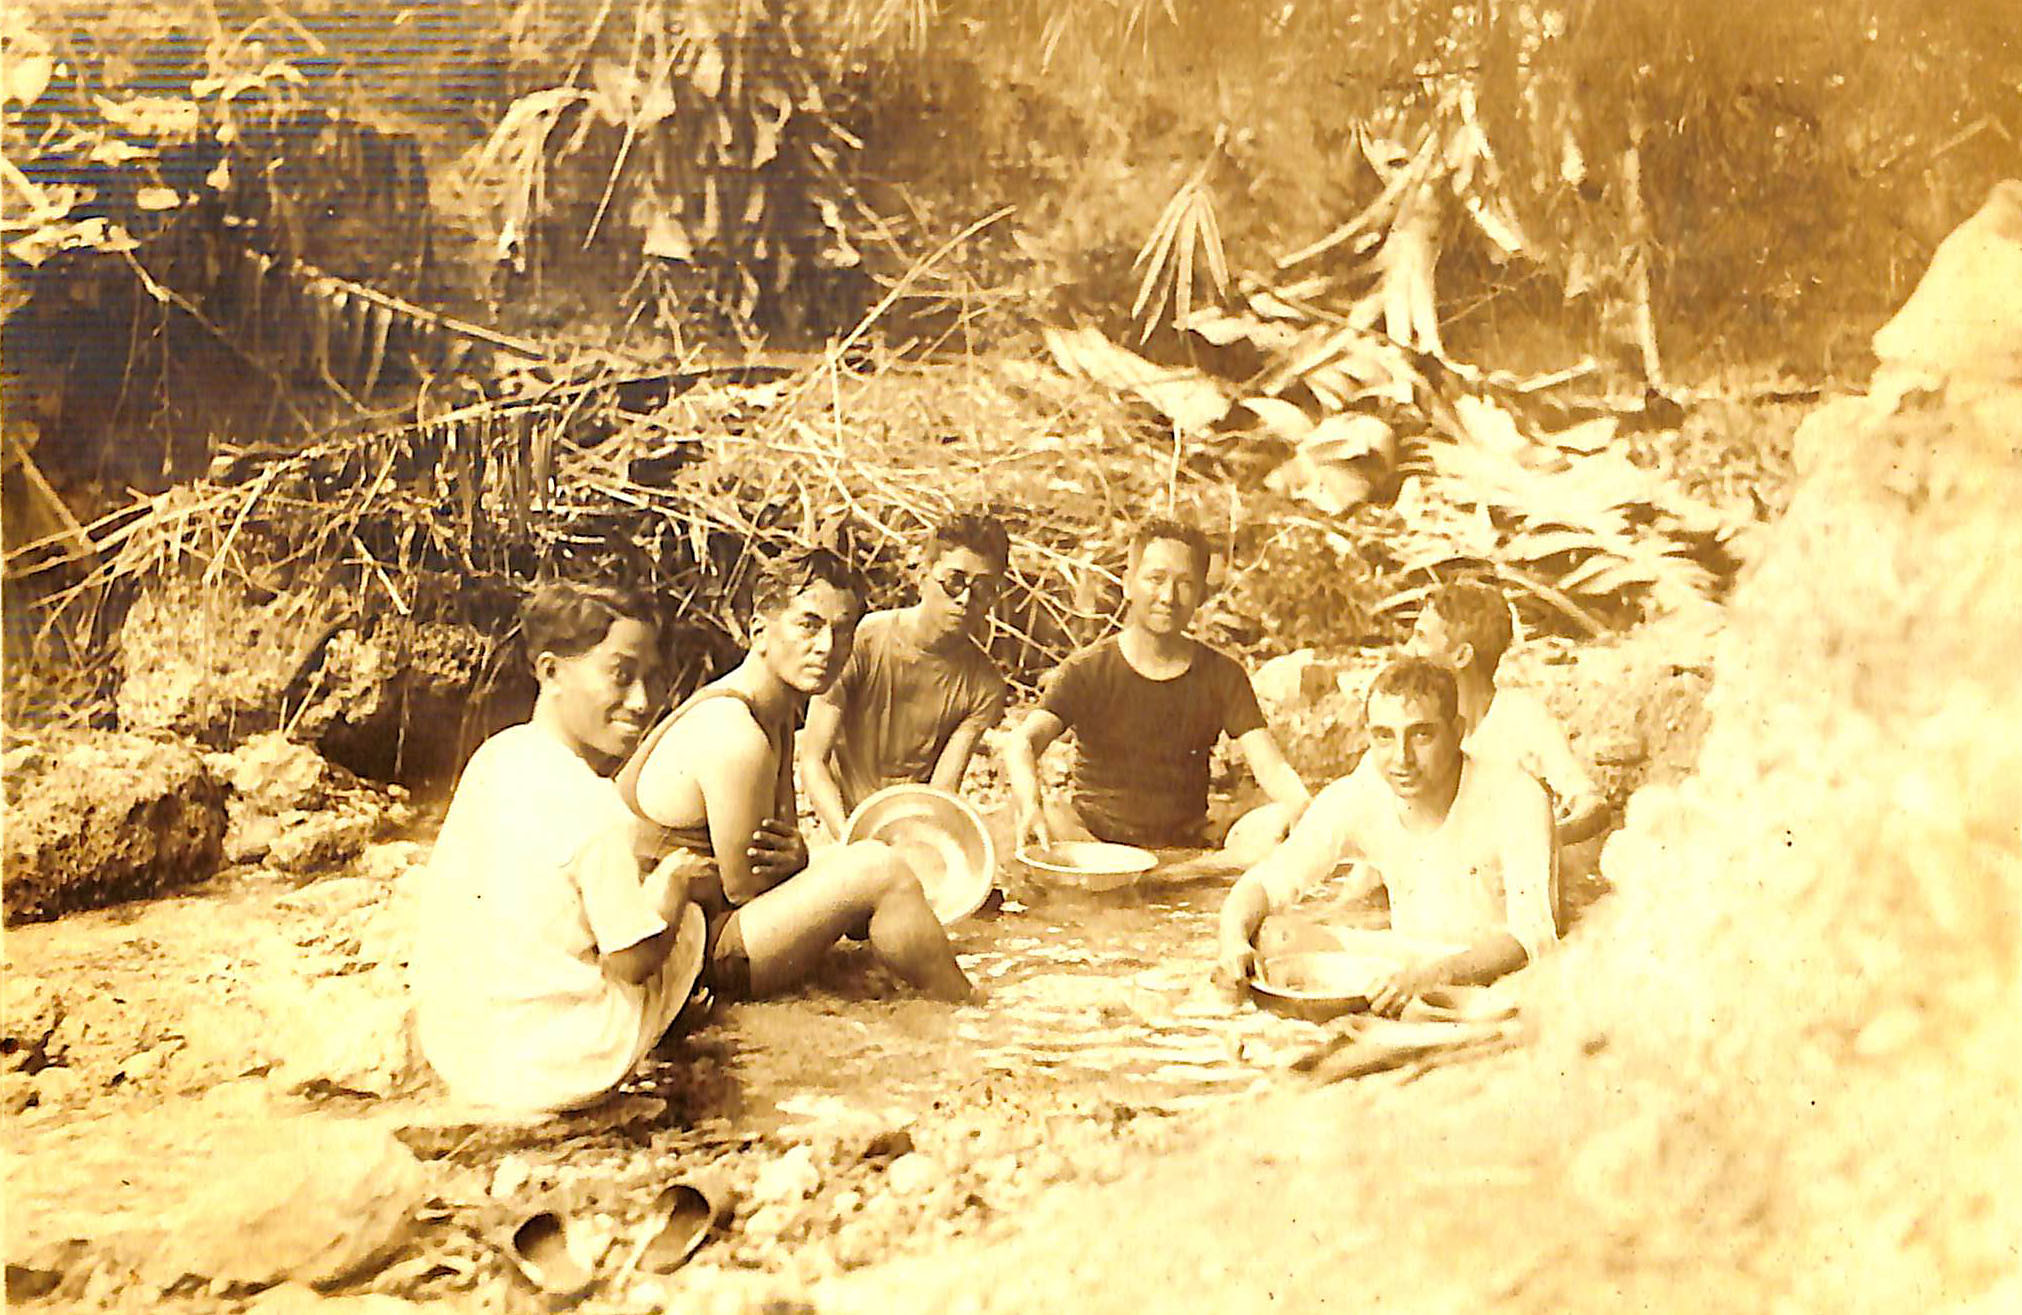 Leaders in a brook: Manuel Quezon, Amado Araneta, Sergio Osmeña and Alfredo M. Montelibano Sr.